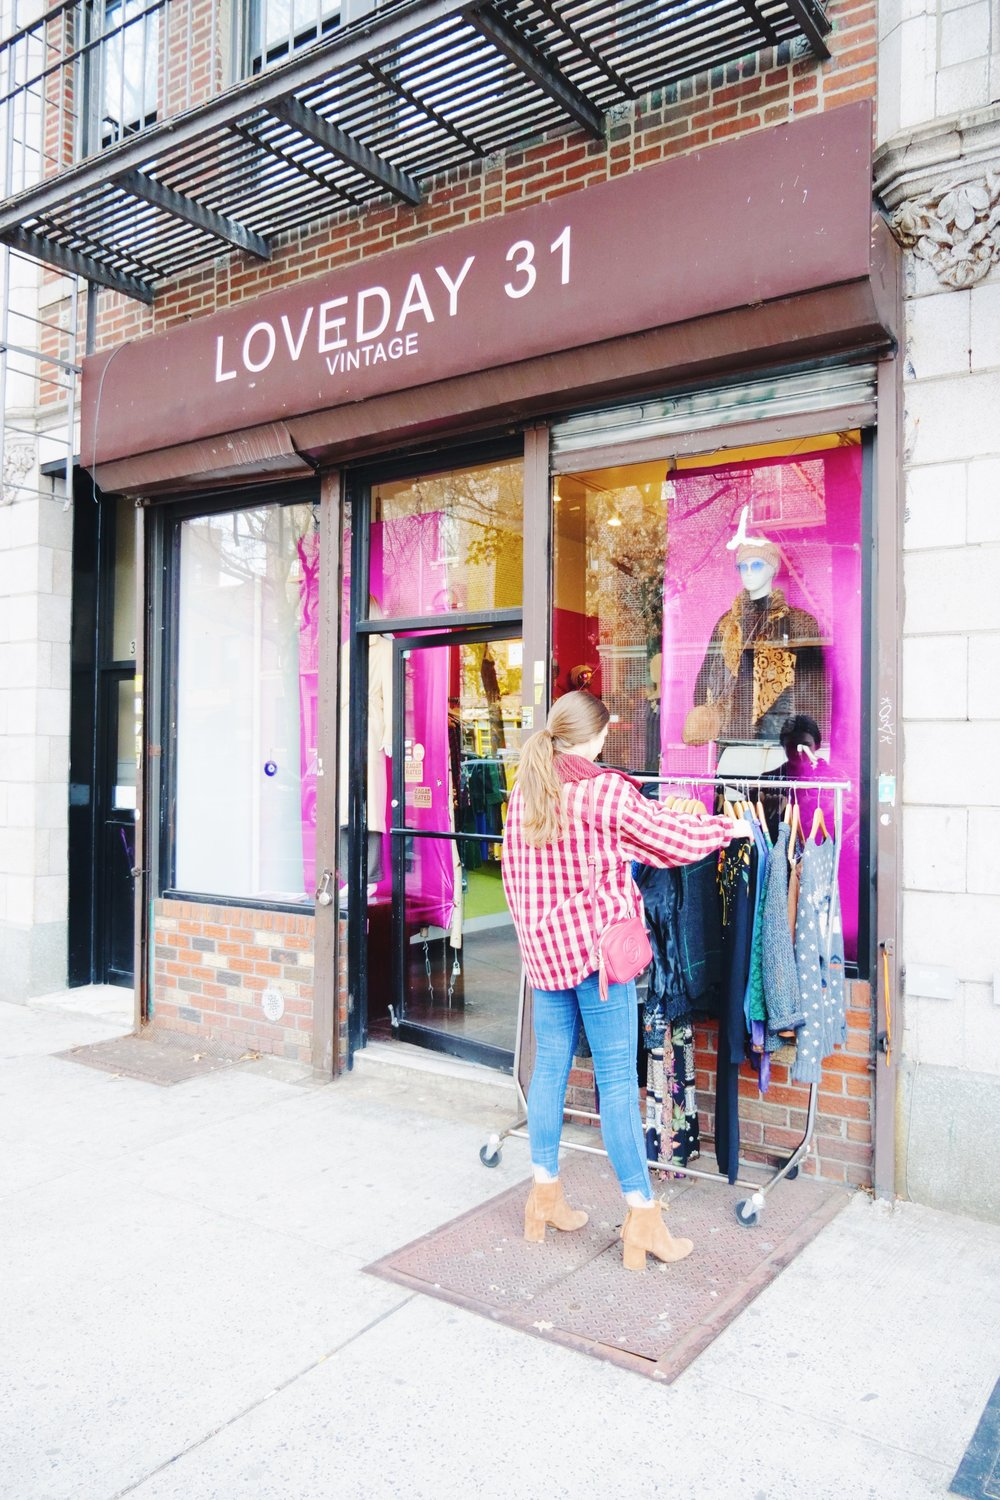 loveday31 is by far one of my favorite places in astoria. ivana, the owner, has poured her heart and soul into this shop. it has been around for over 10 years and her pieces she sells are one-of-a-kind.